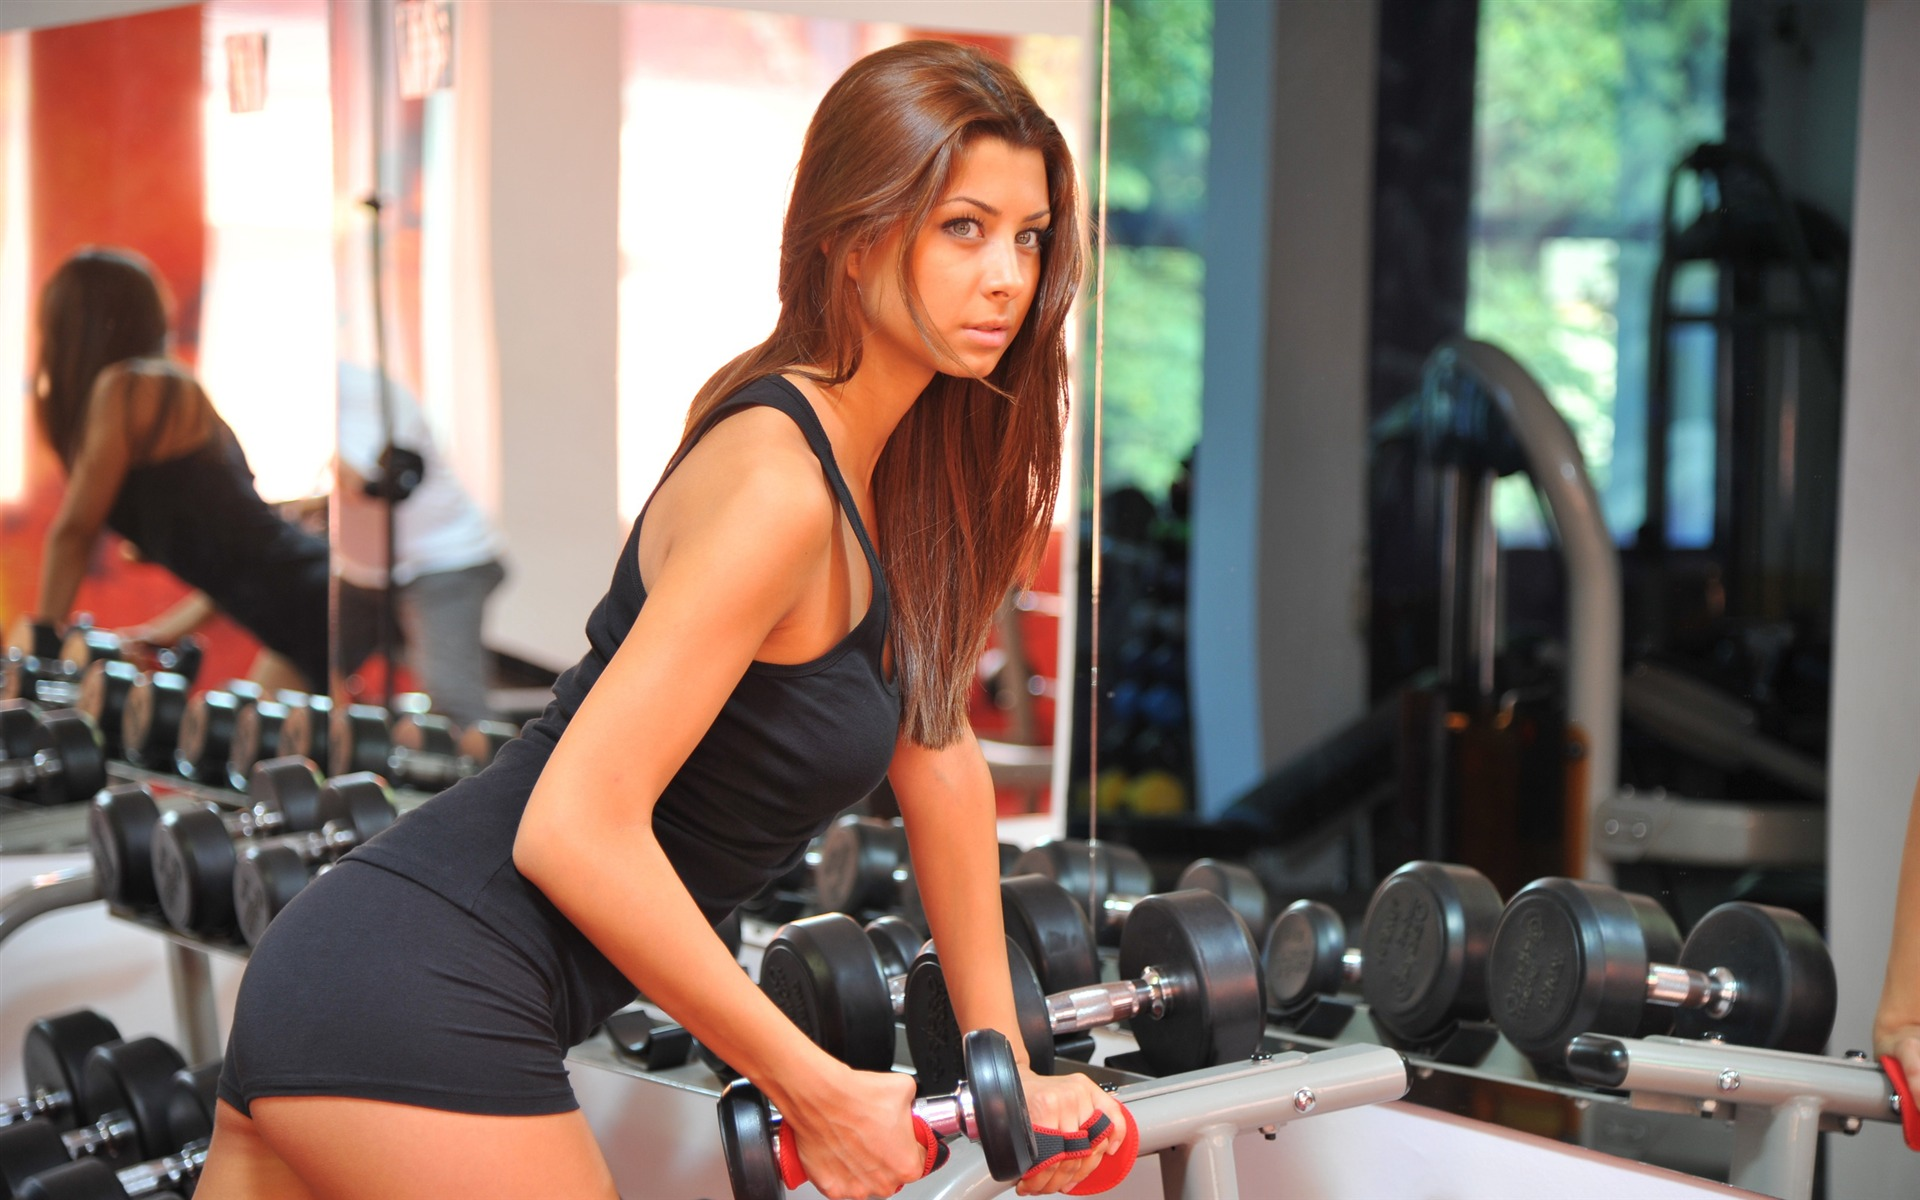 Hot Girl with dumbbell fitness sports photo wallpaper 1920x1200